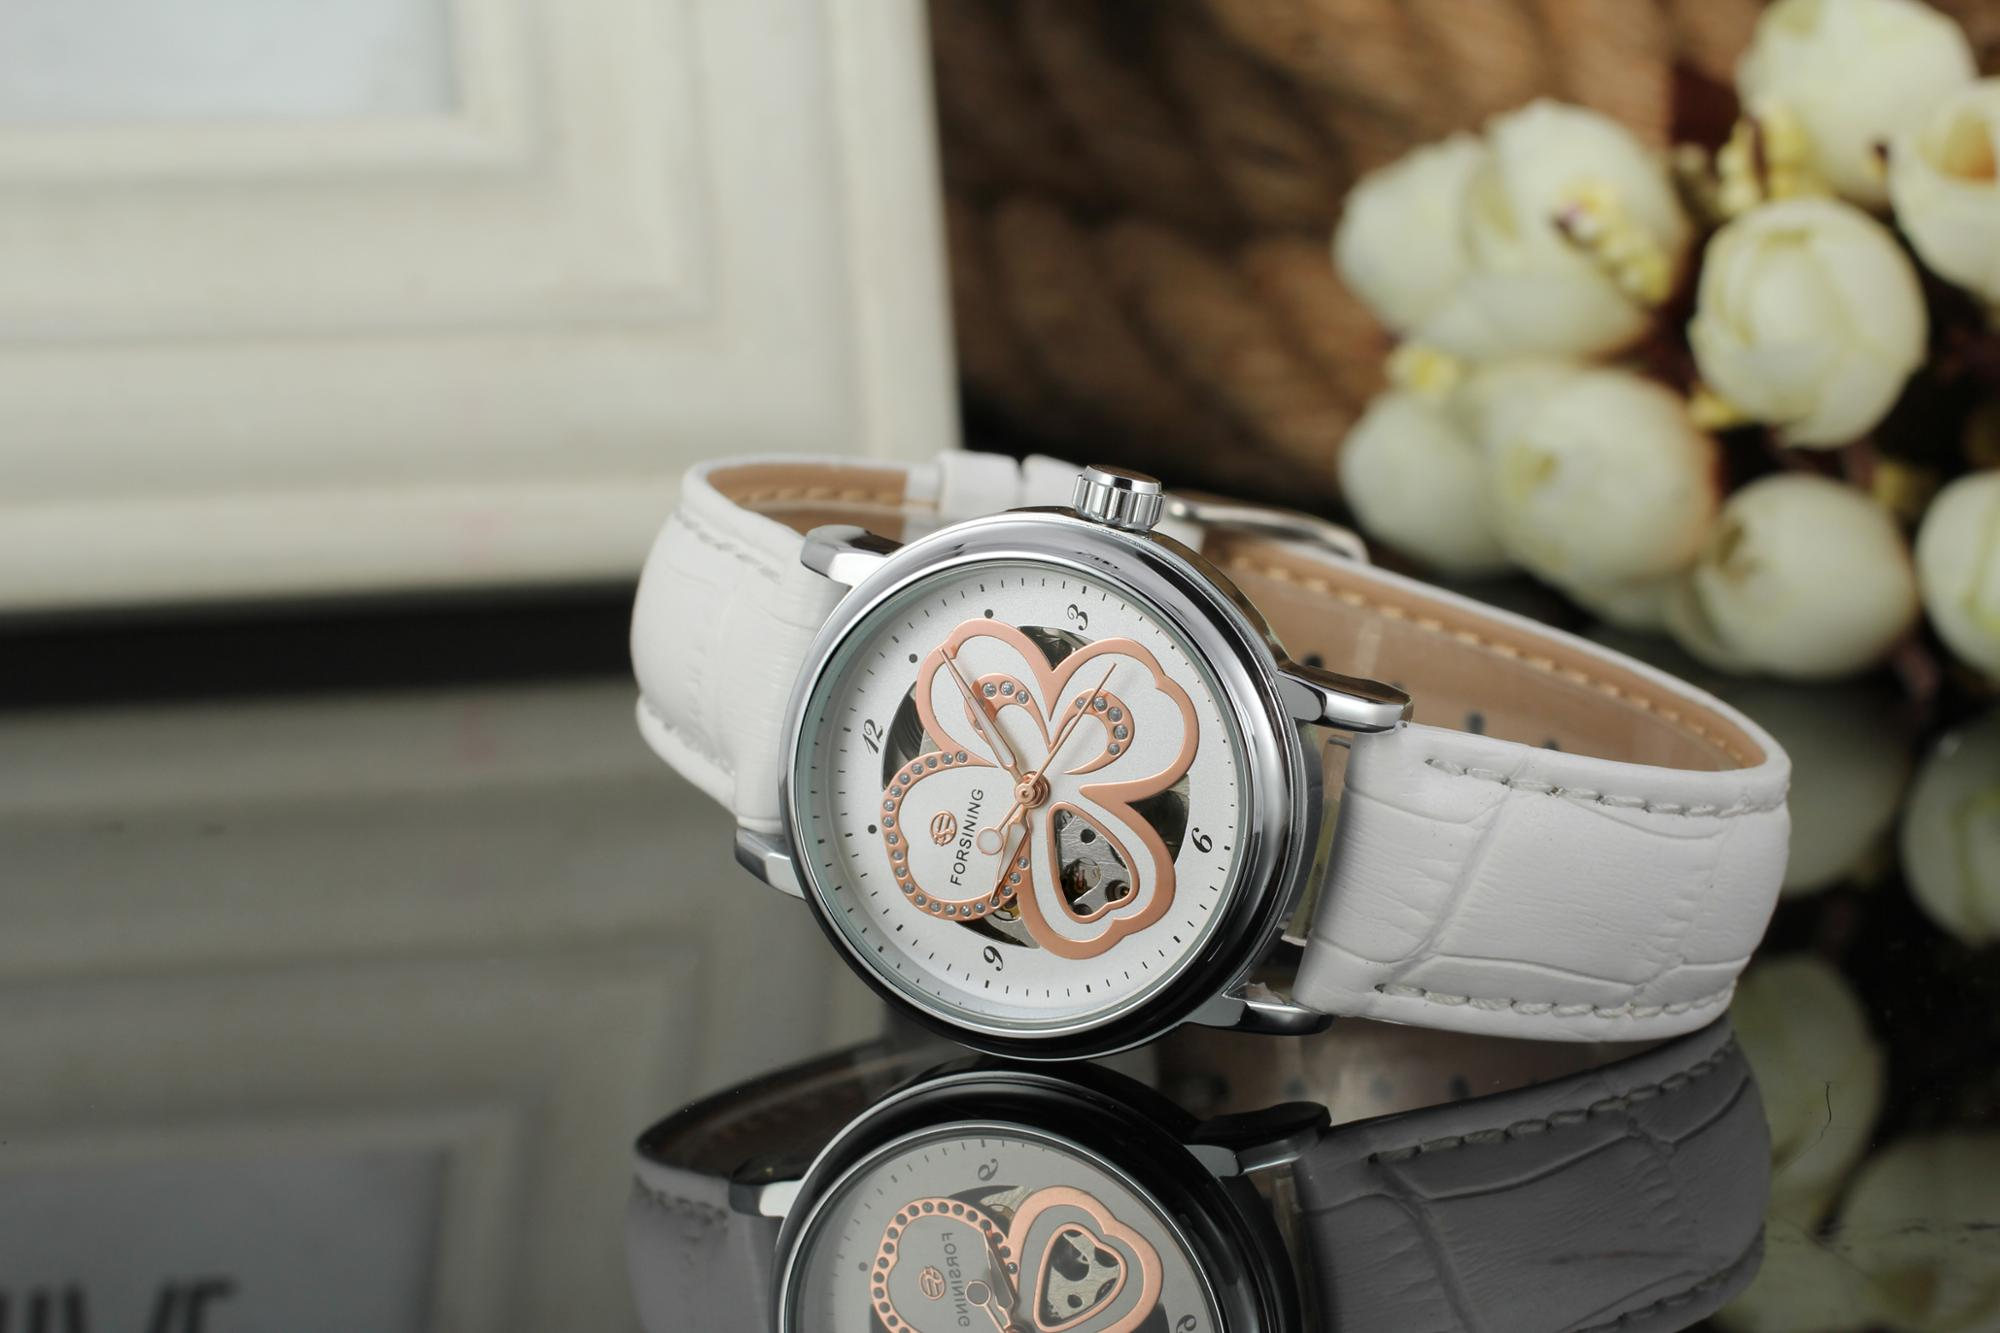 s on watches ck w sets calvin usd klein replica wholesale cheap quality